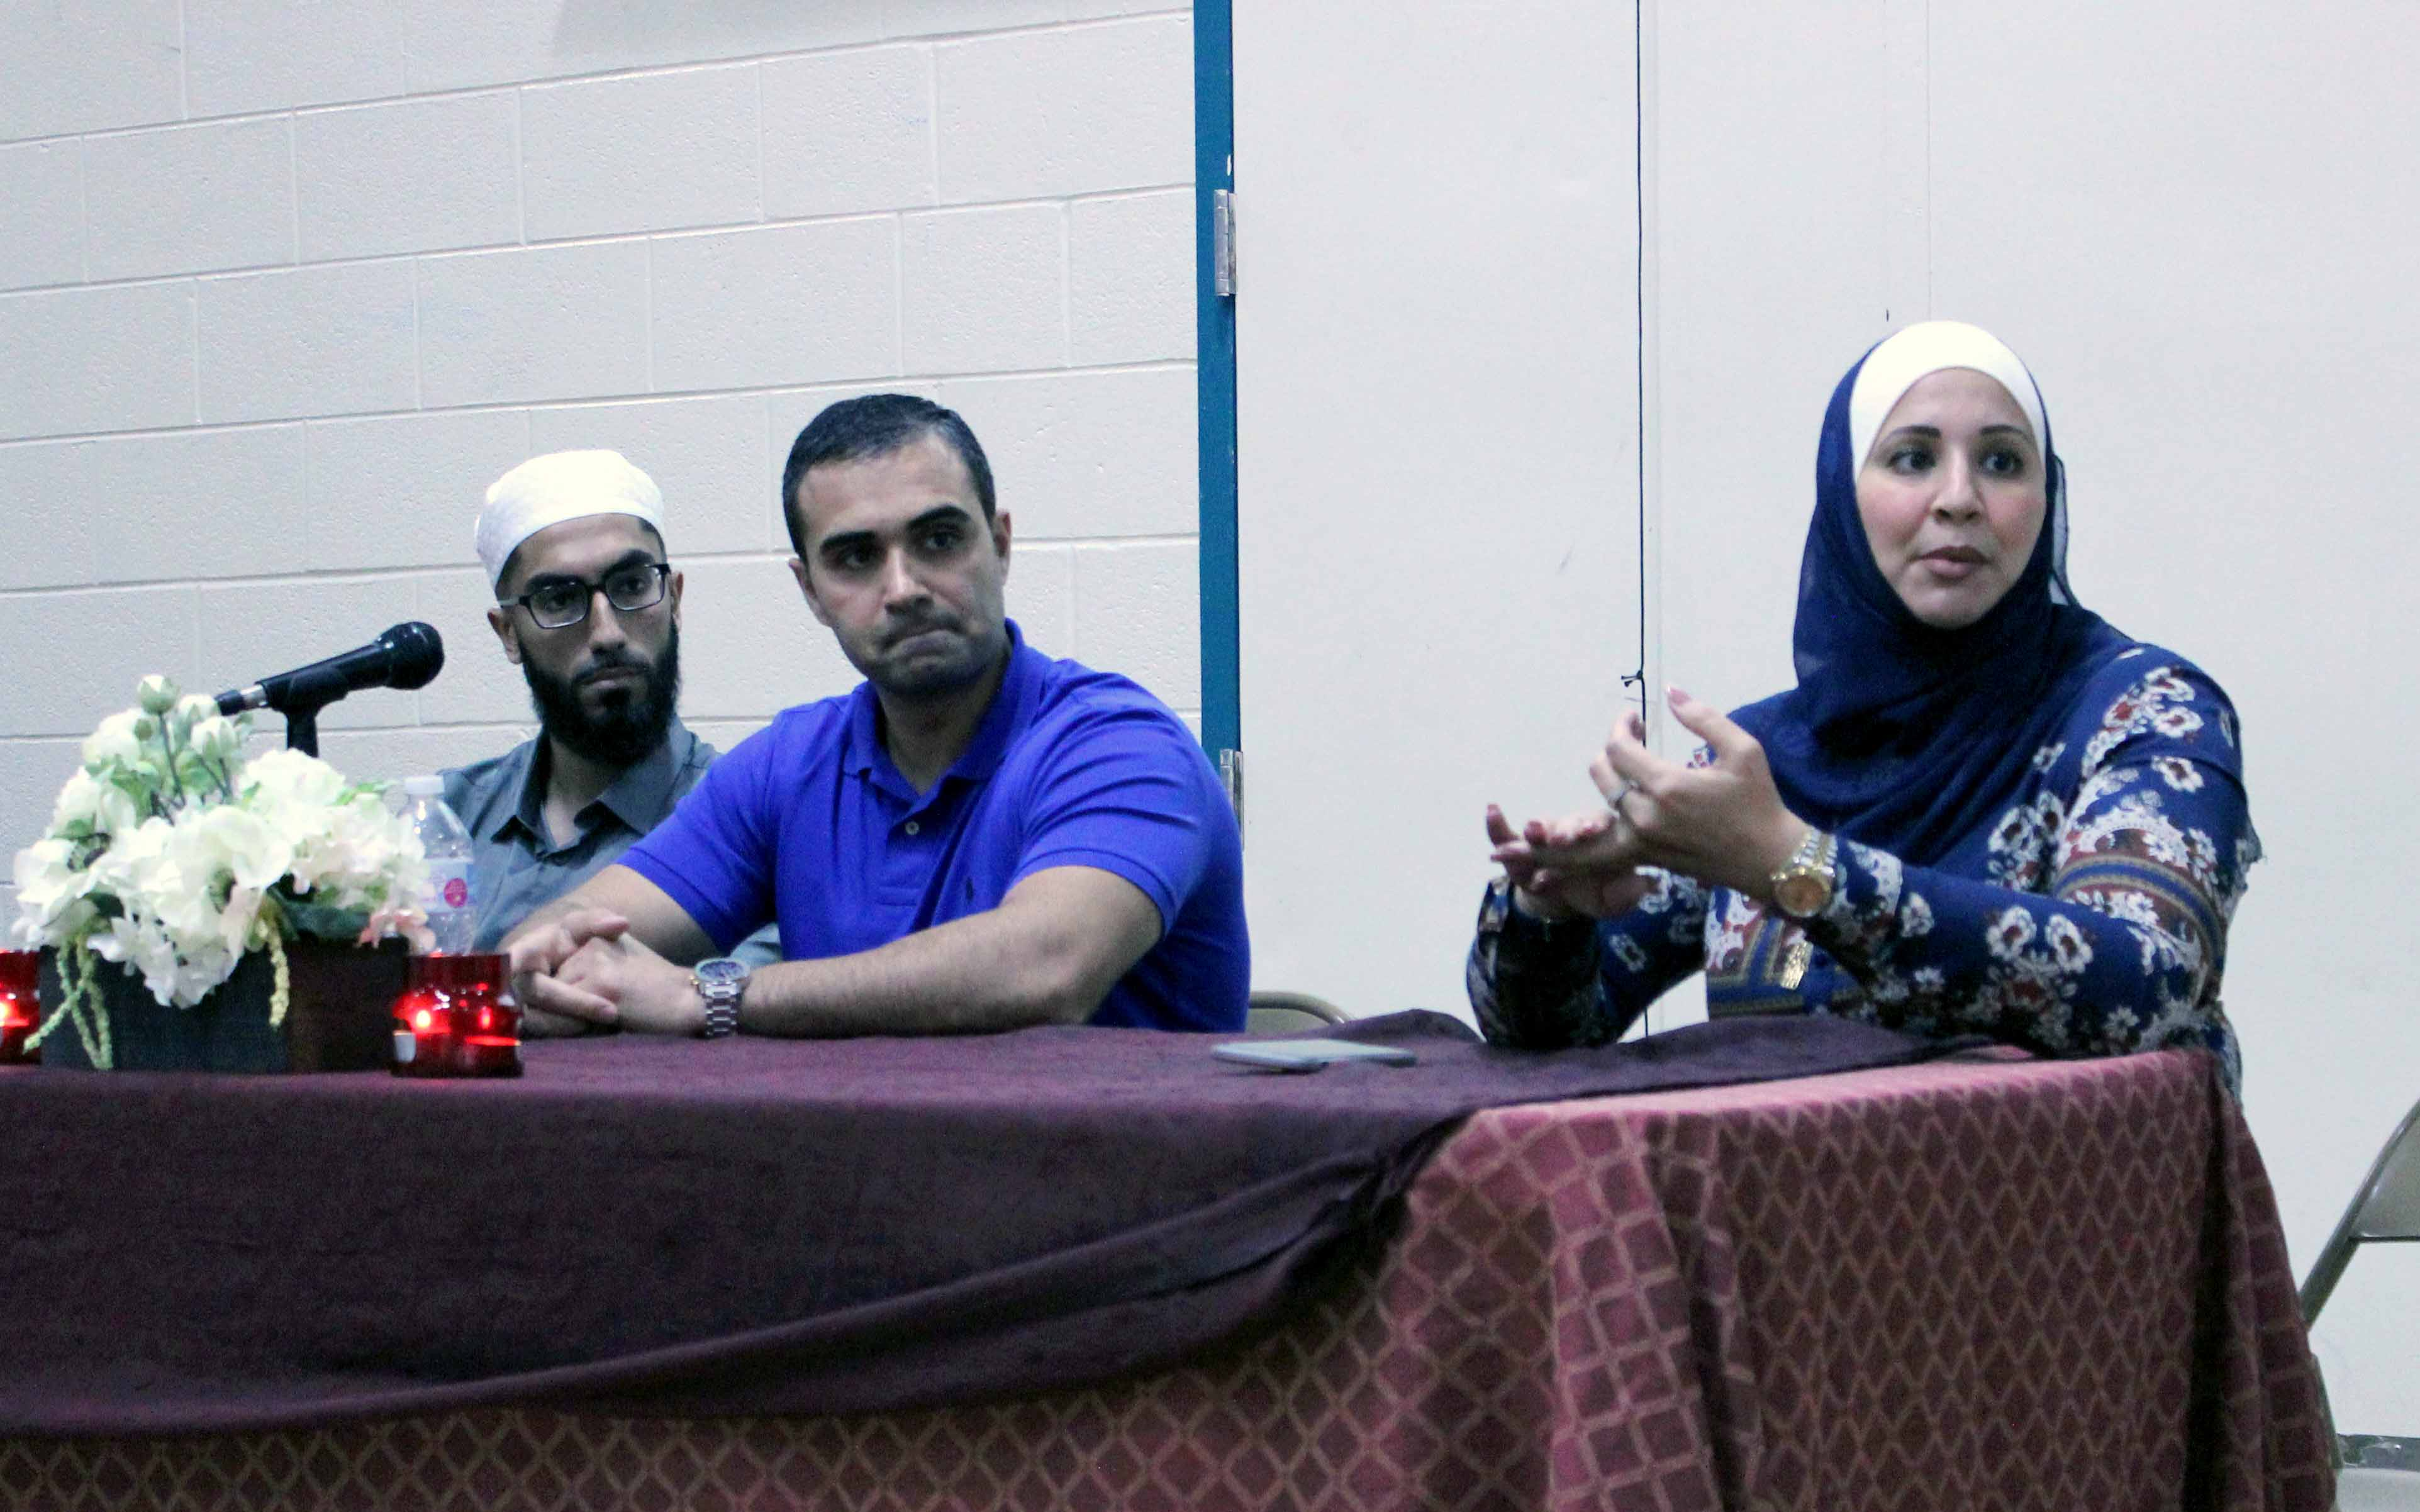 Panelists Ghufraan Akram, Ali Sayed and Suehaila Amen speak to a crowd at MCWS mosque